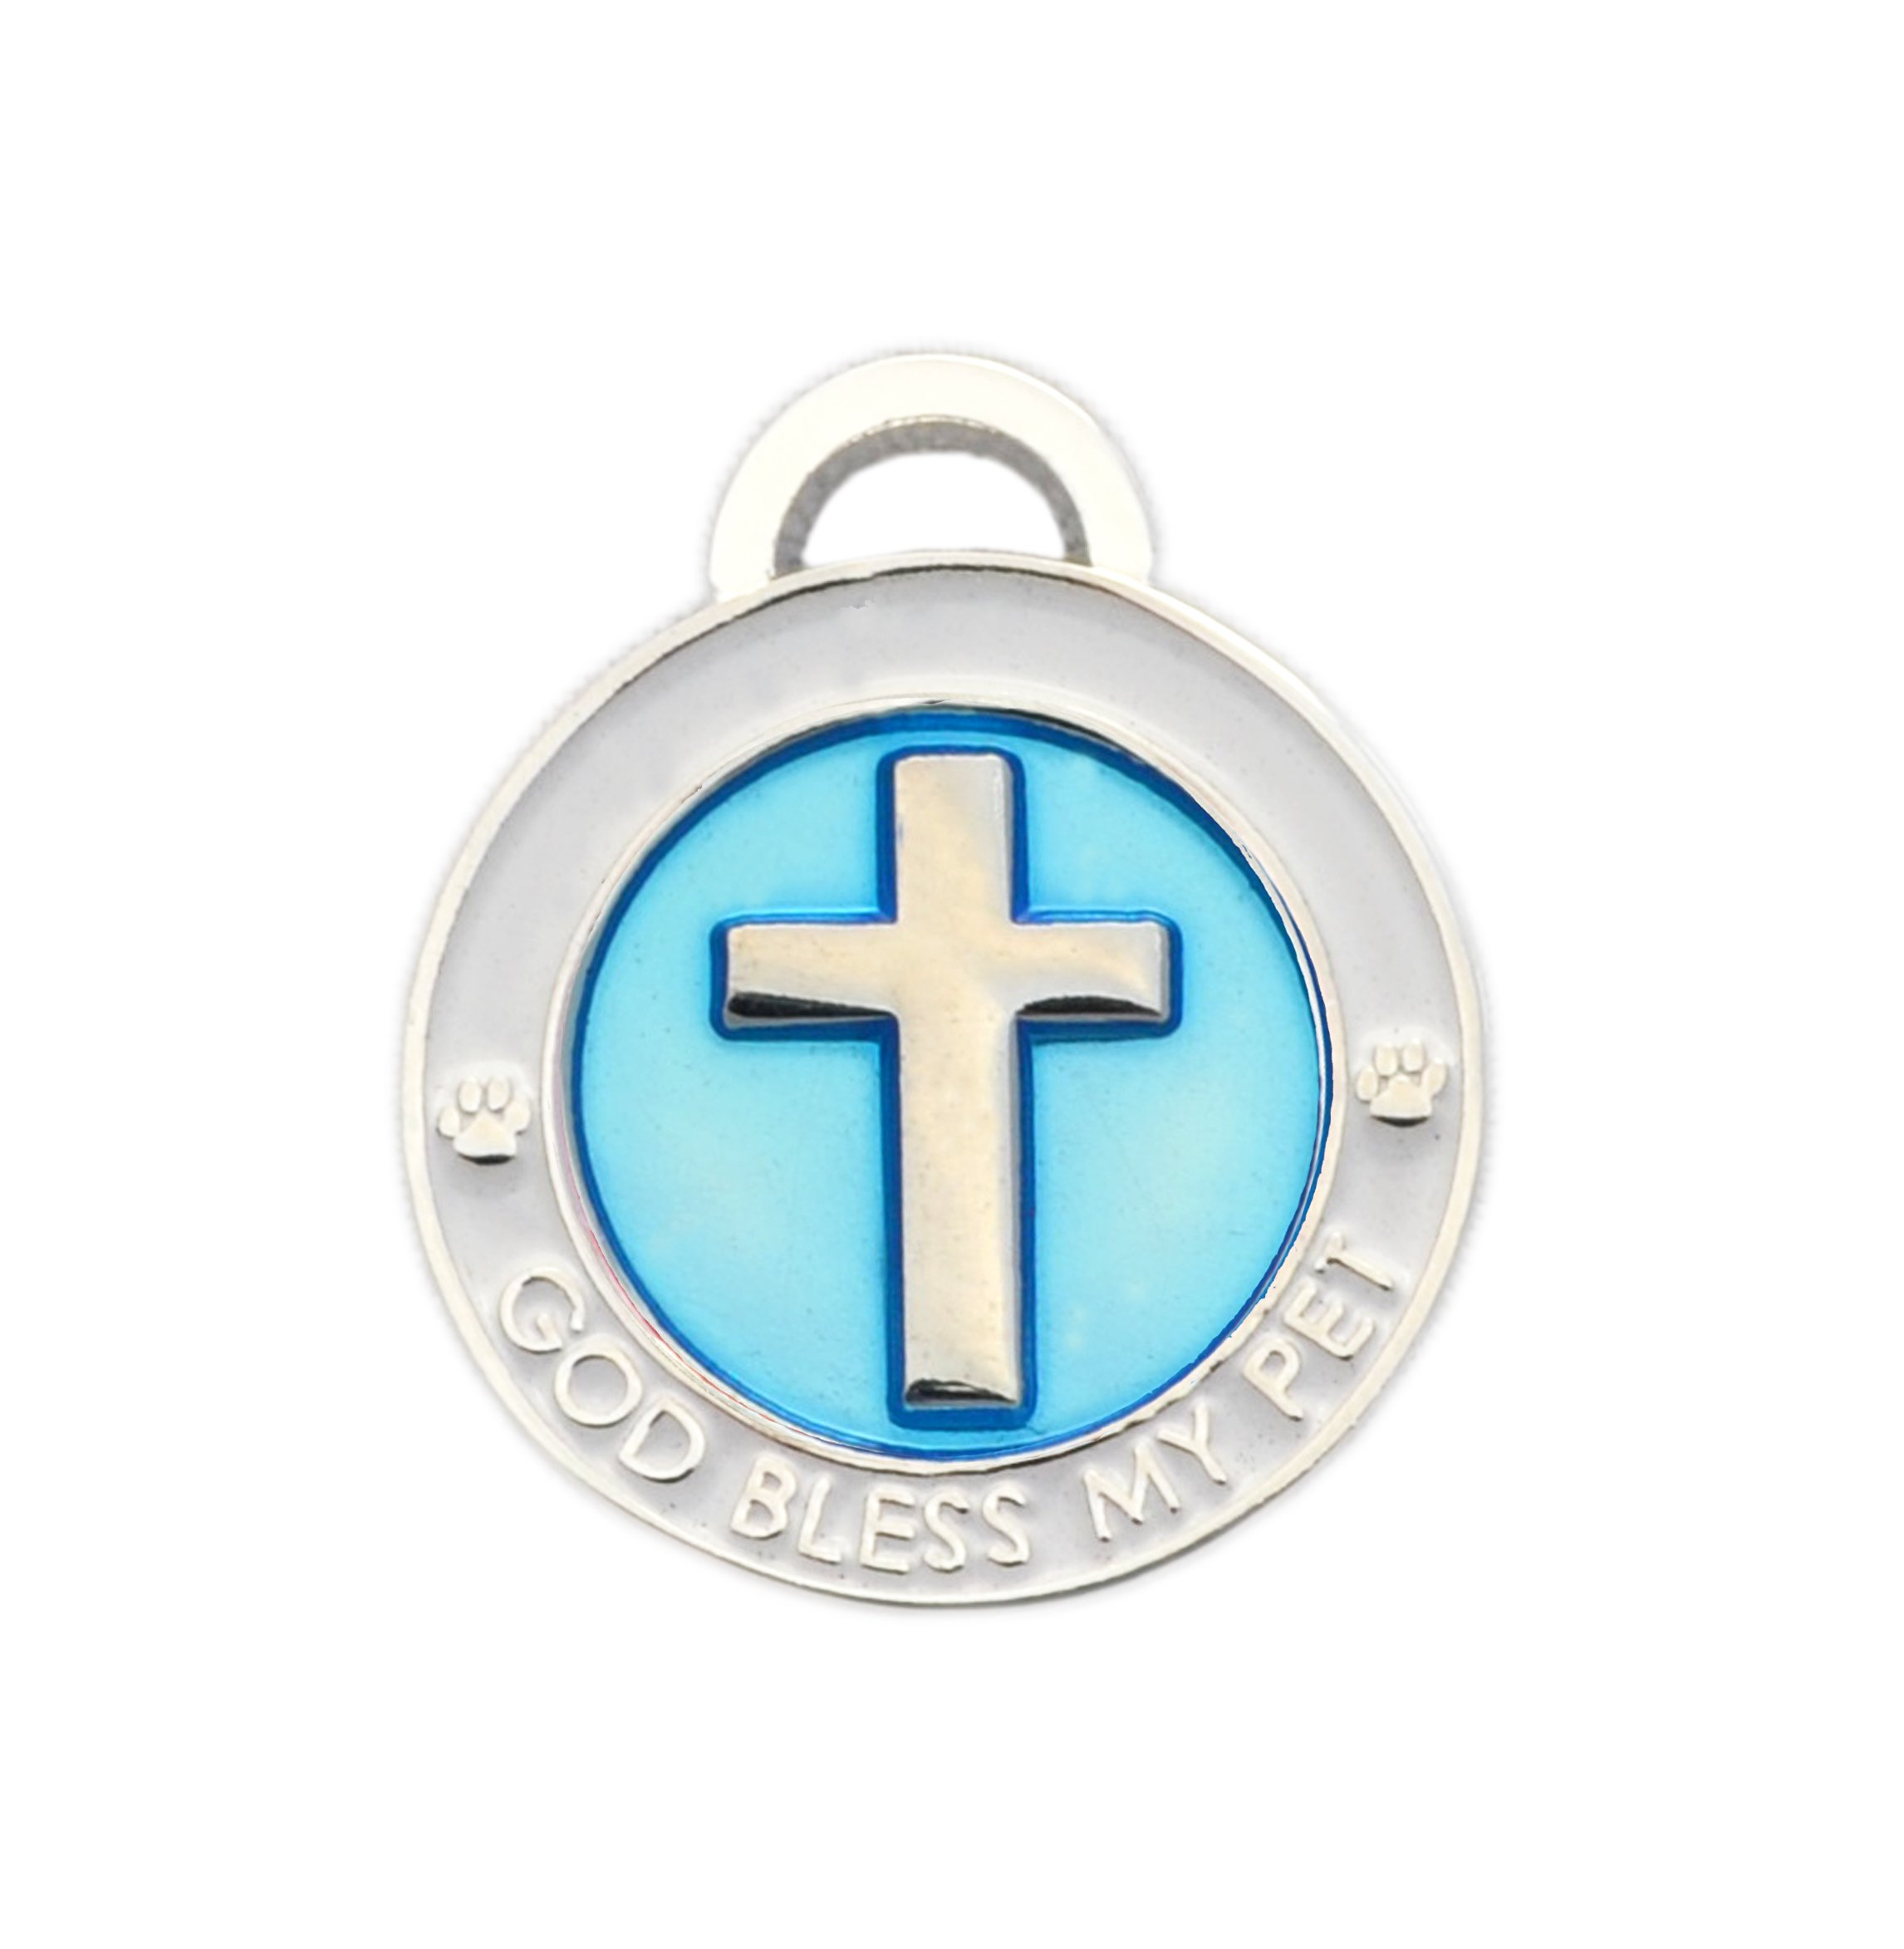 Luxepets Pet Collar Charm, Cross, Small, Blue by Luxepets